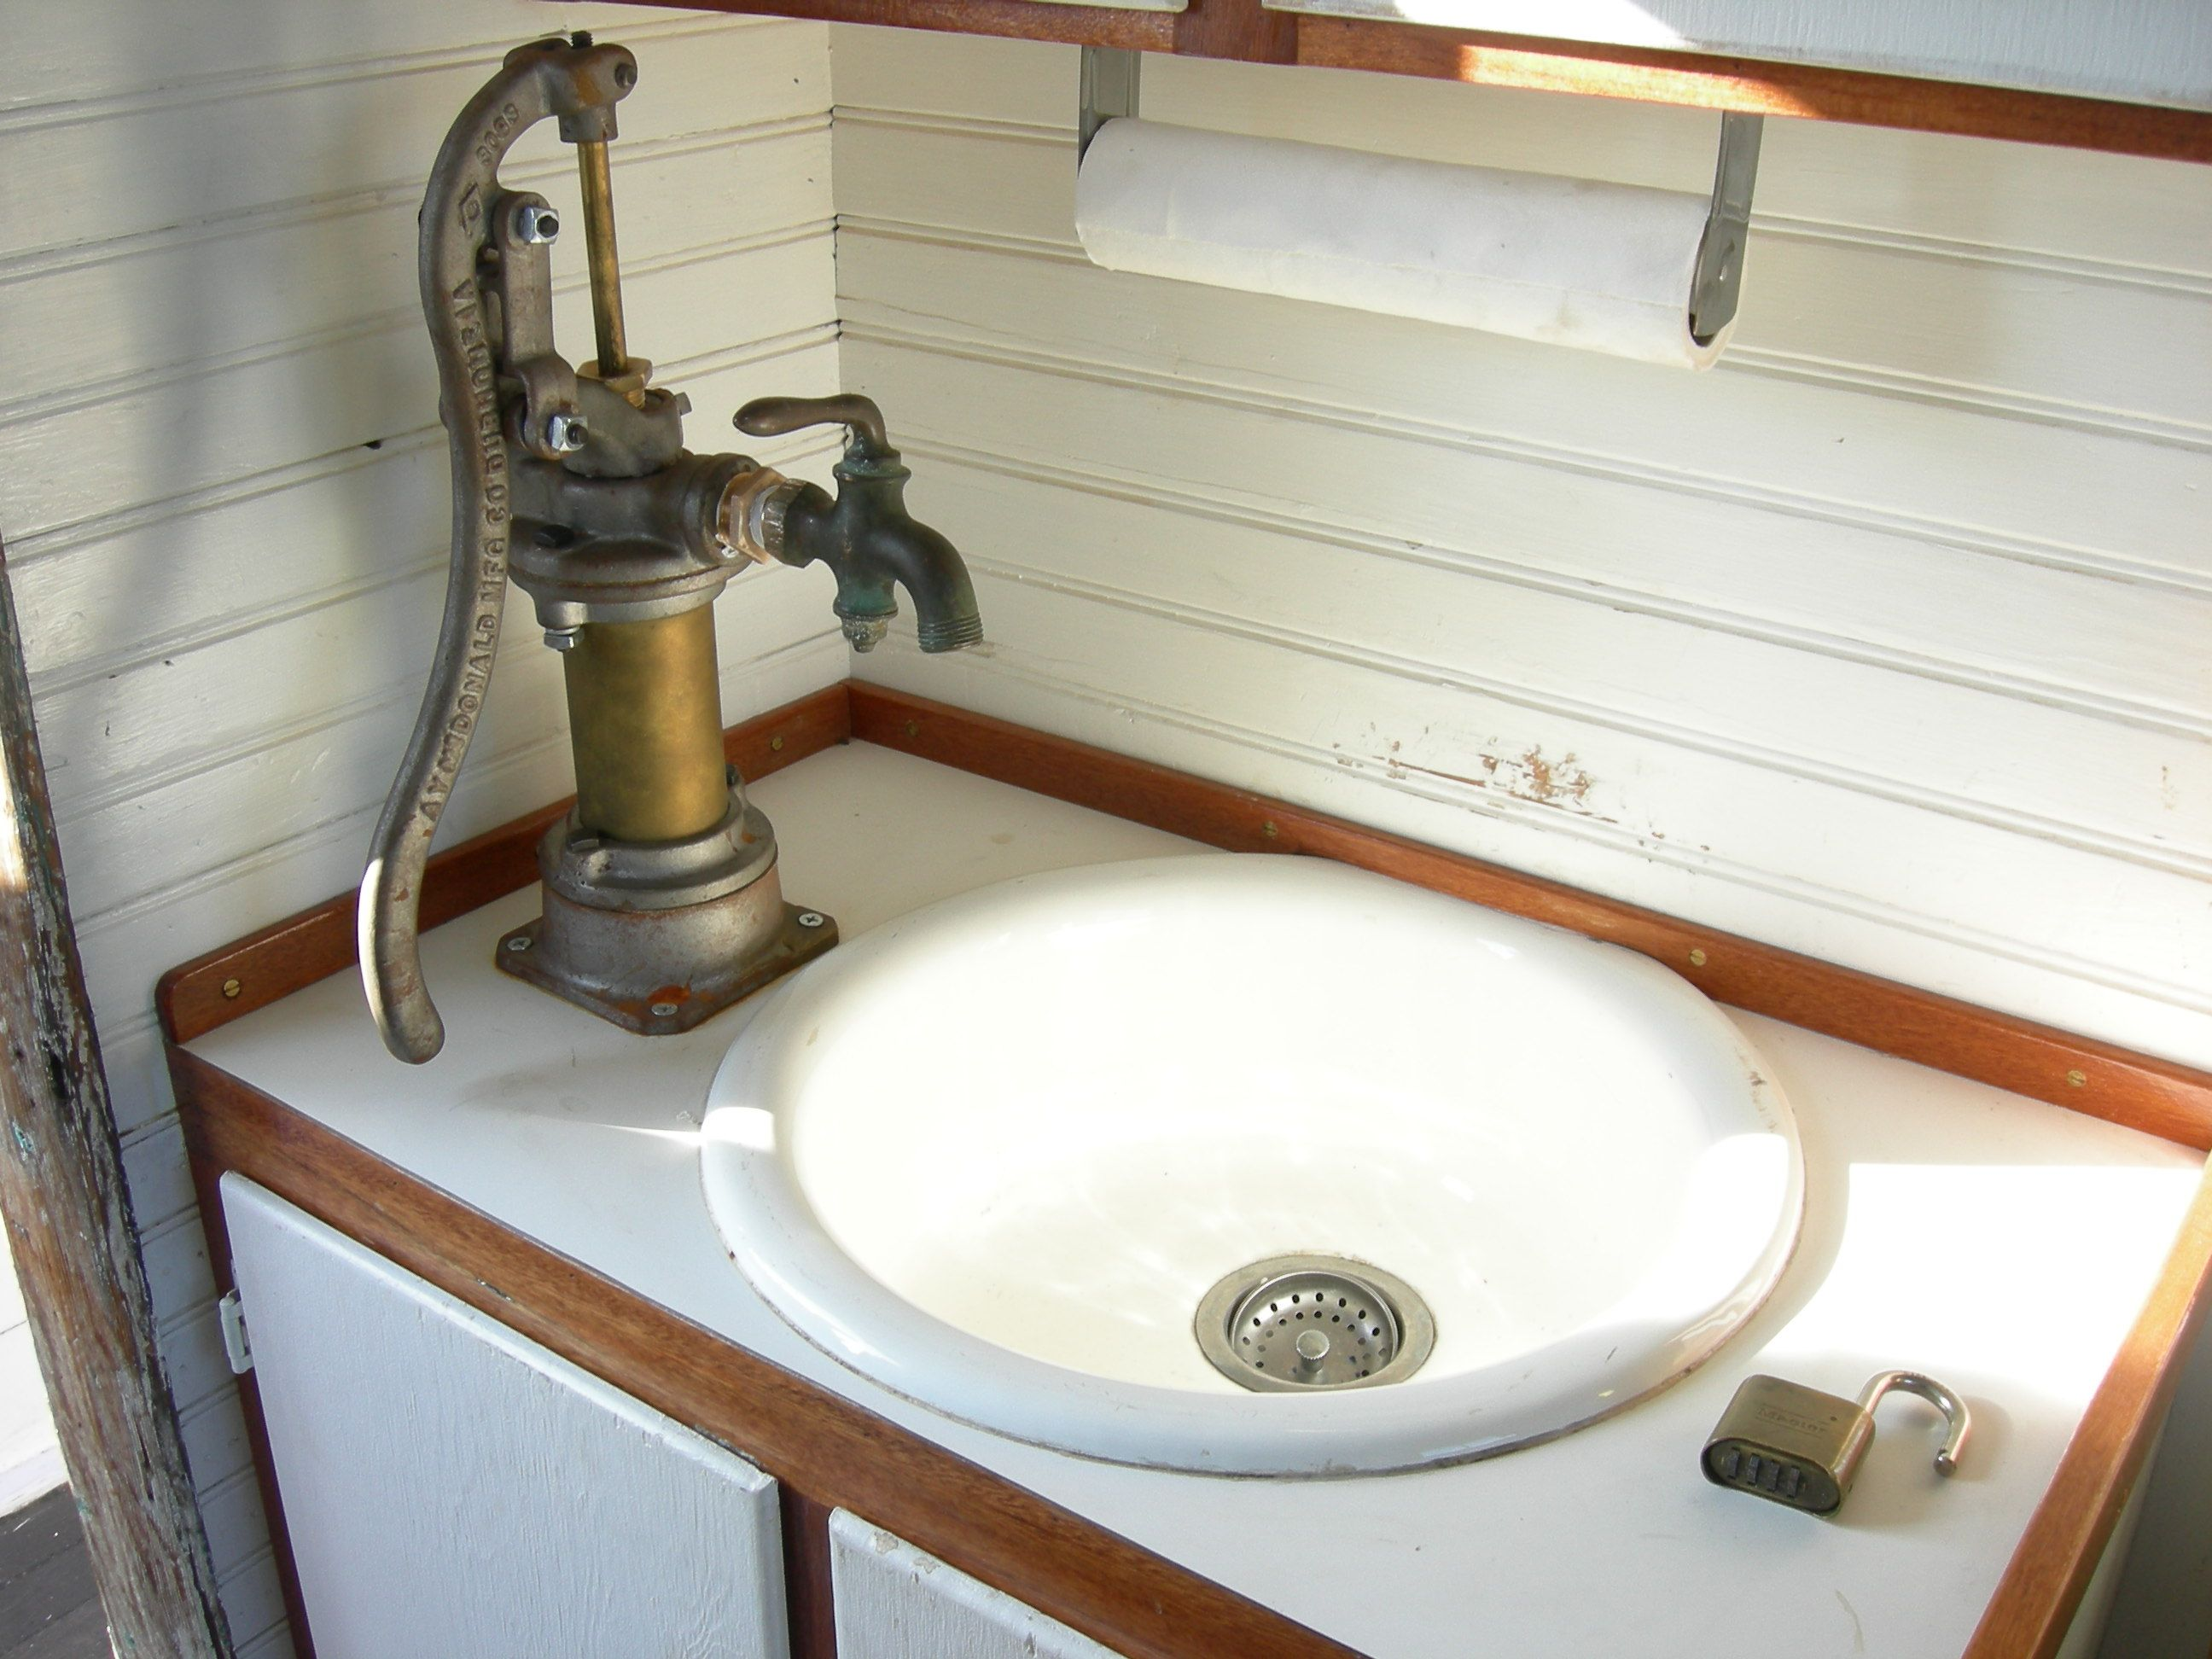 Http Bonsie007 Hubpages Com Hub Life With A Kitchen Sink Hand